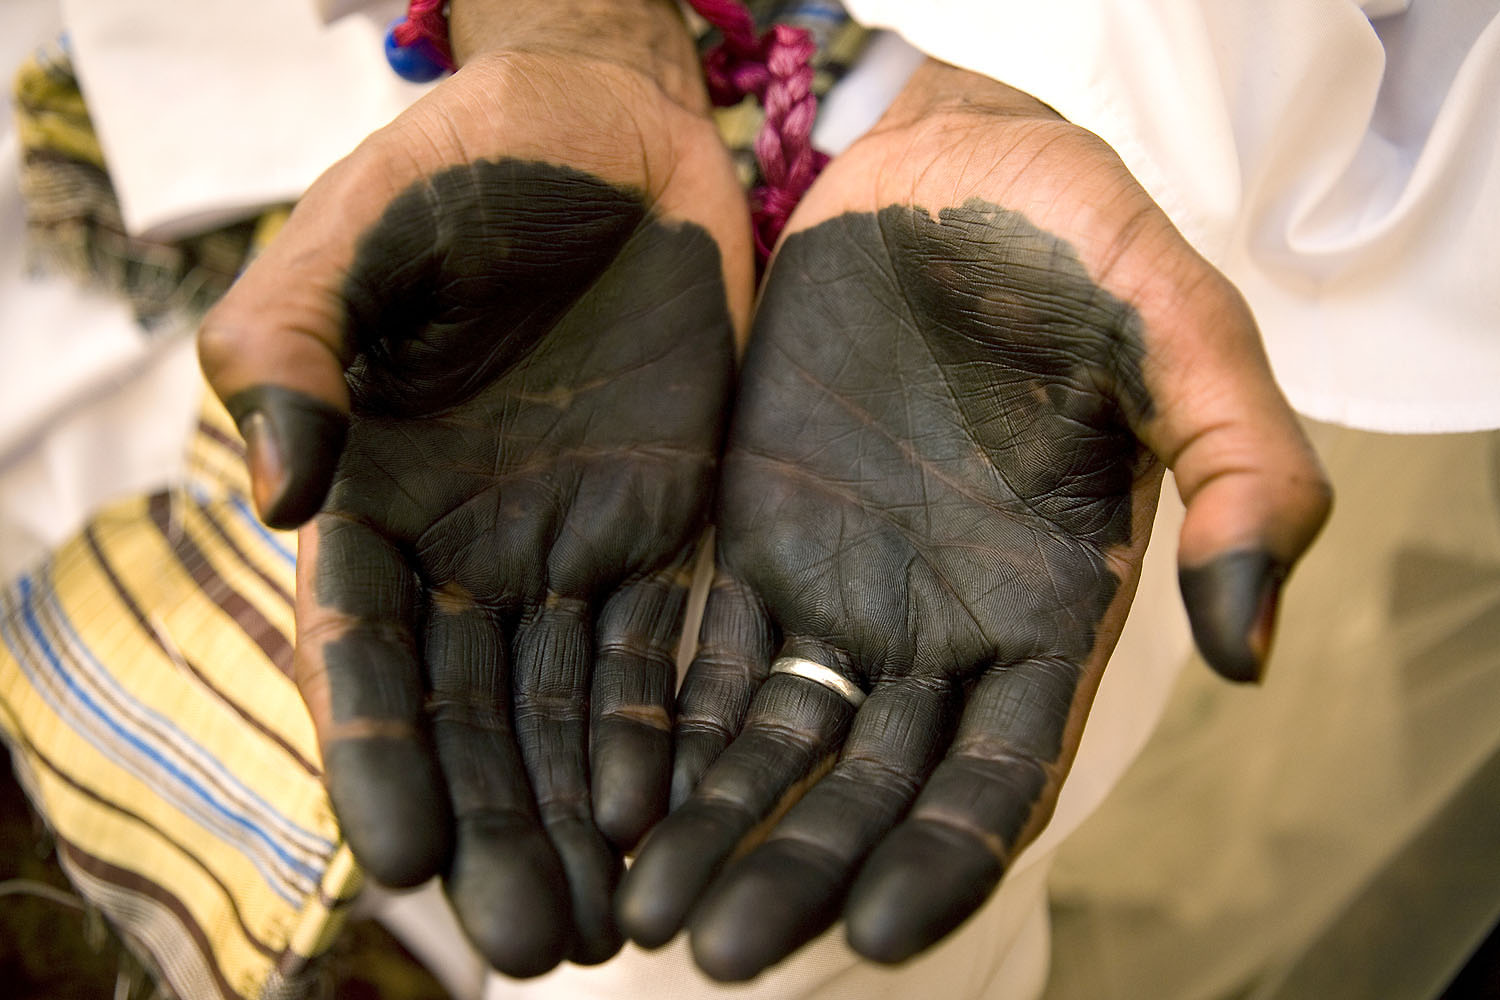 The groom's palms are painted with henna, a tradition for men on the days of their wedding and circumcision.